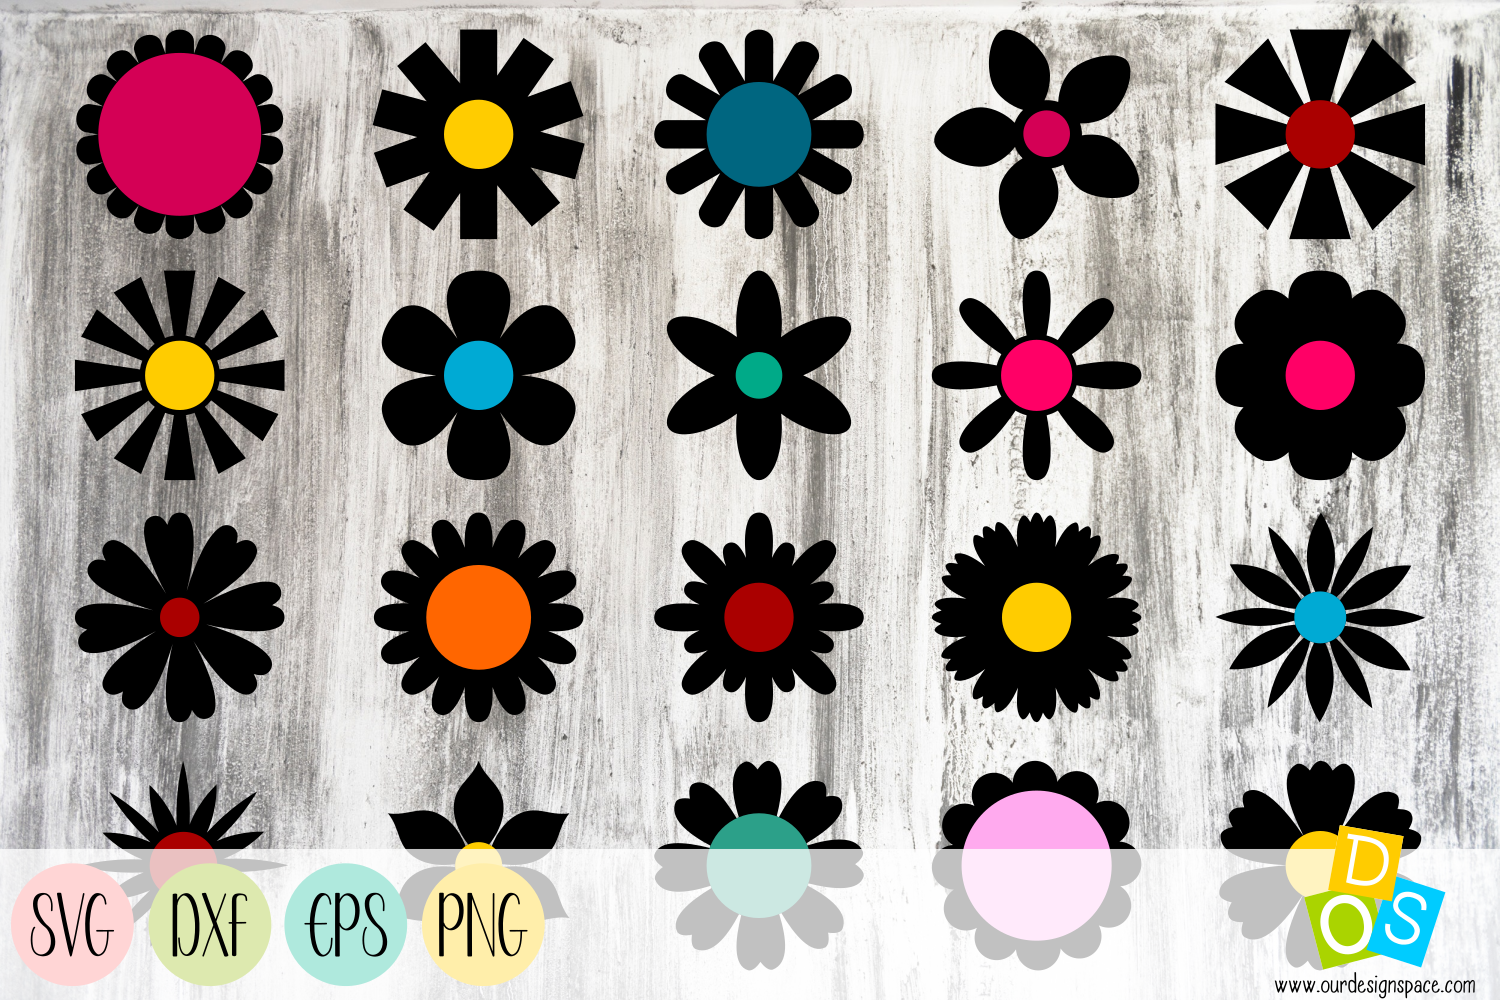 Simple Flowers 3 SVG, DXF, EPS and PNG Craft file